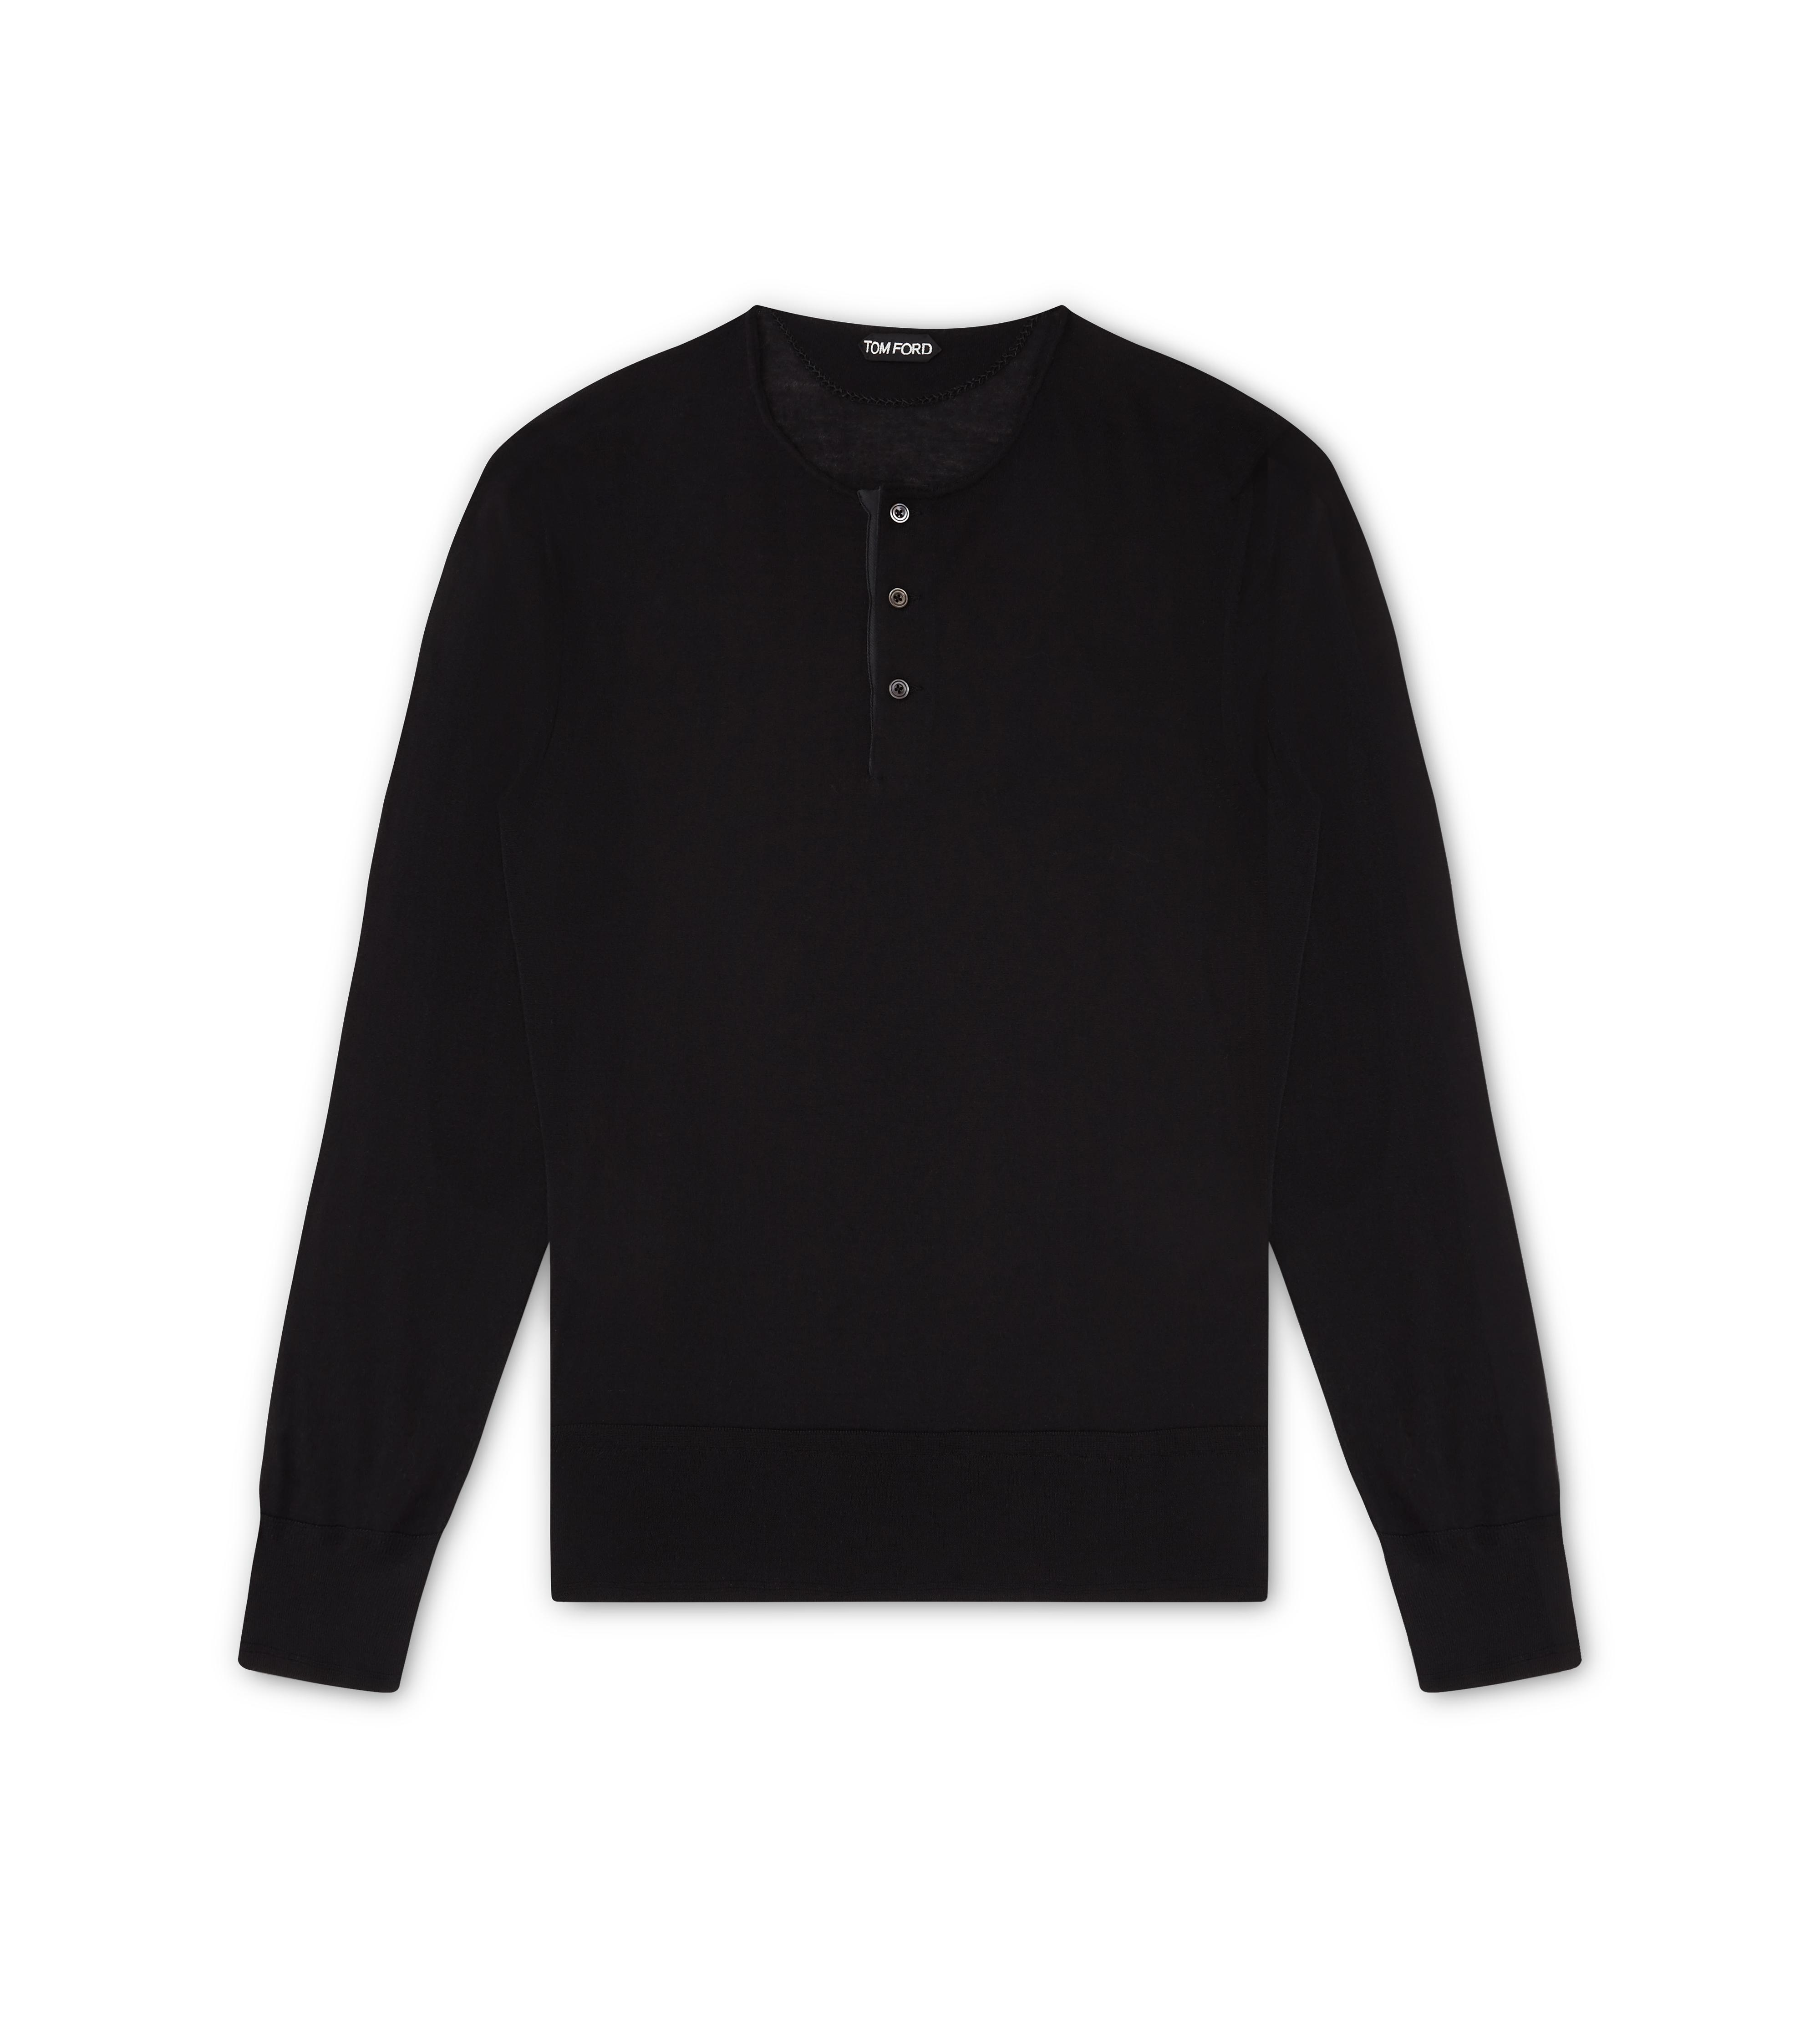 SUPERFINE CASHMERE LONG-SLEEVED HENLEY A thumbnail